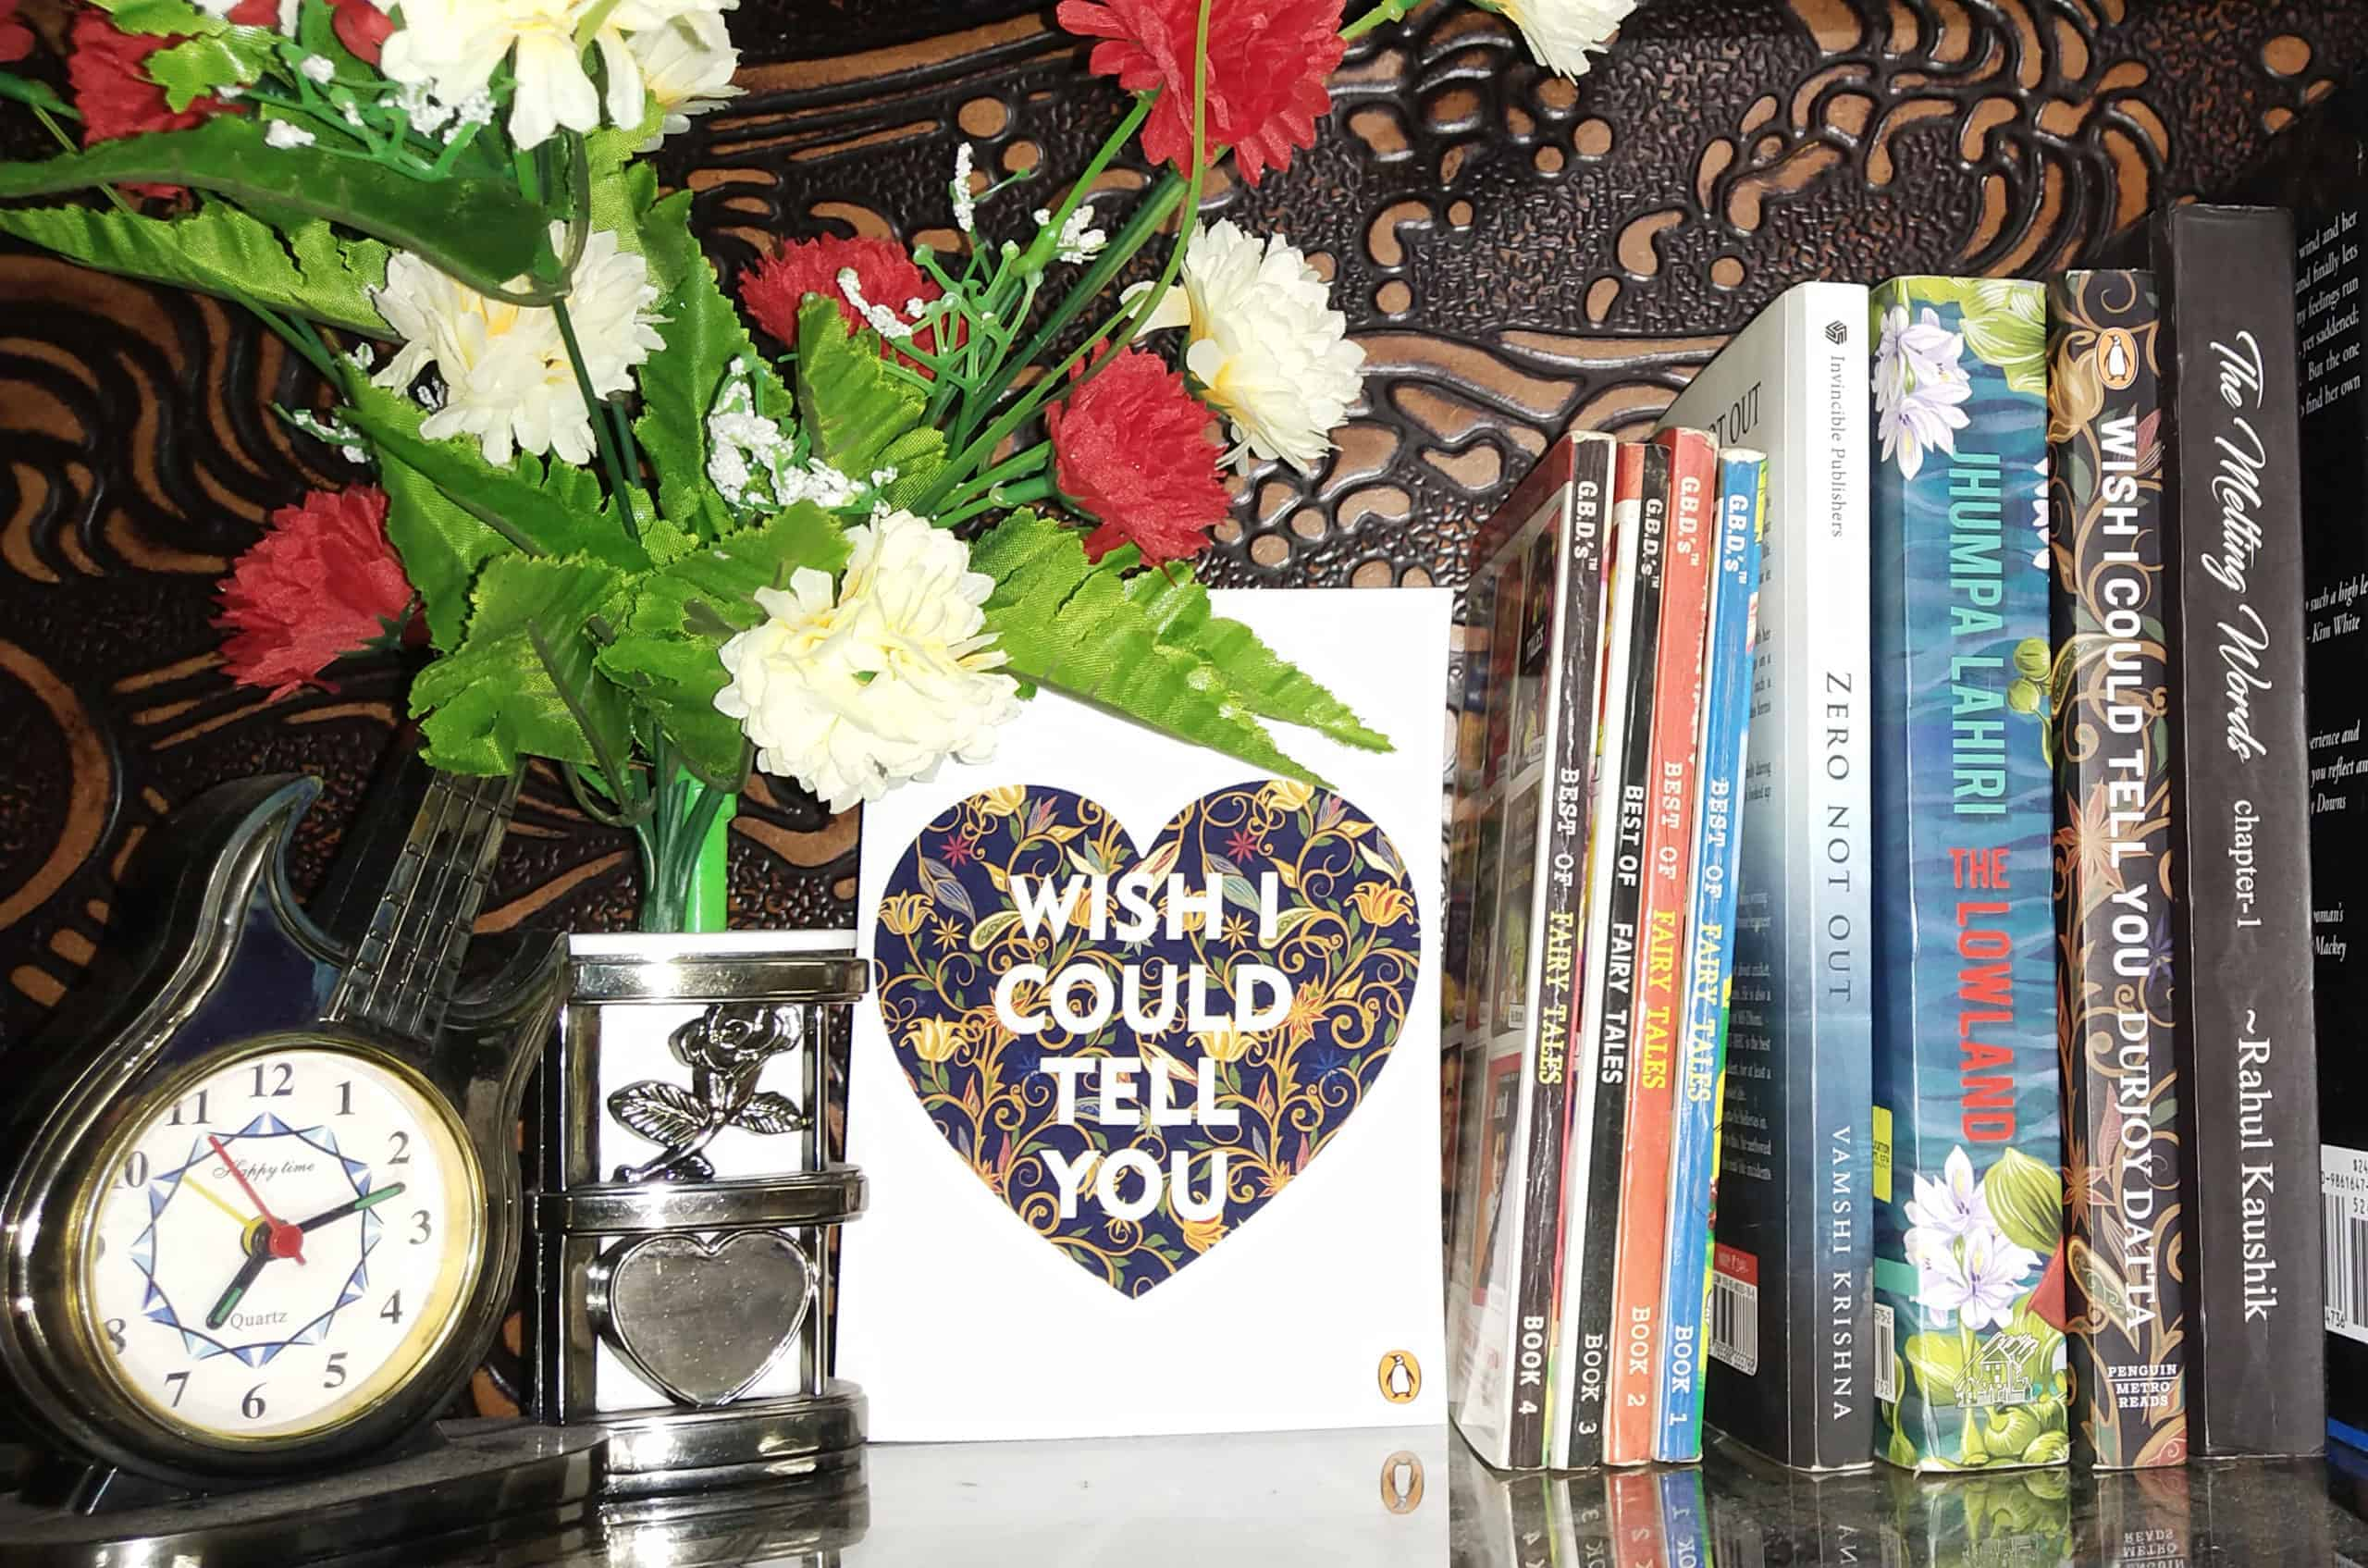 Habit Of Reading Books Positive Thoughts